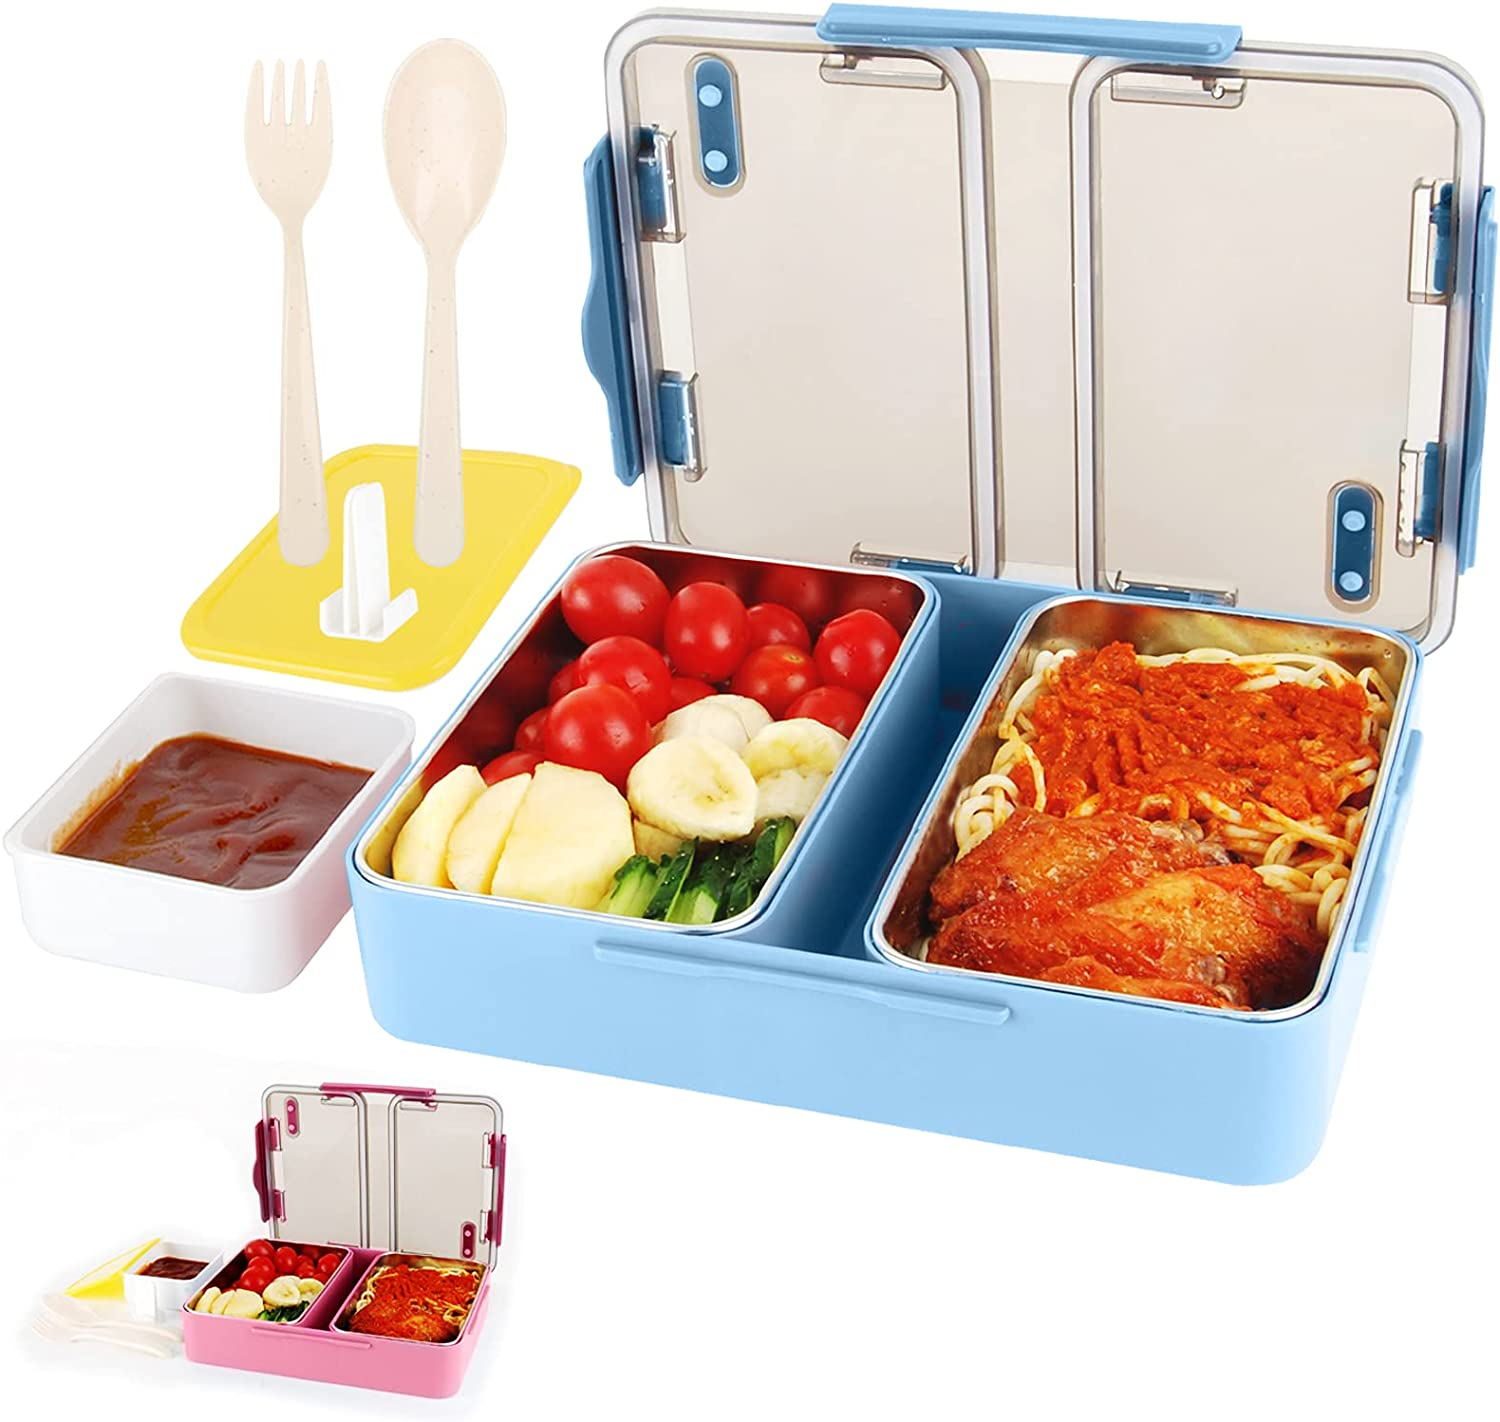 Bento Box Max 51% OFF Genteen On the Go Stai 2 High with Capacity Lunch OFFicial store